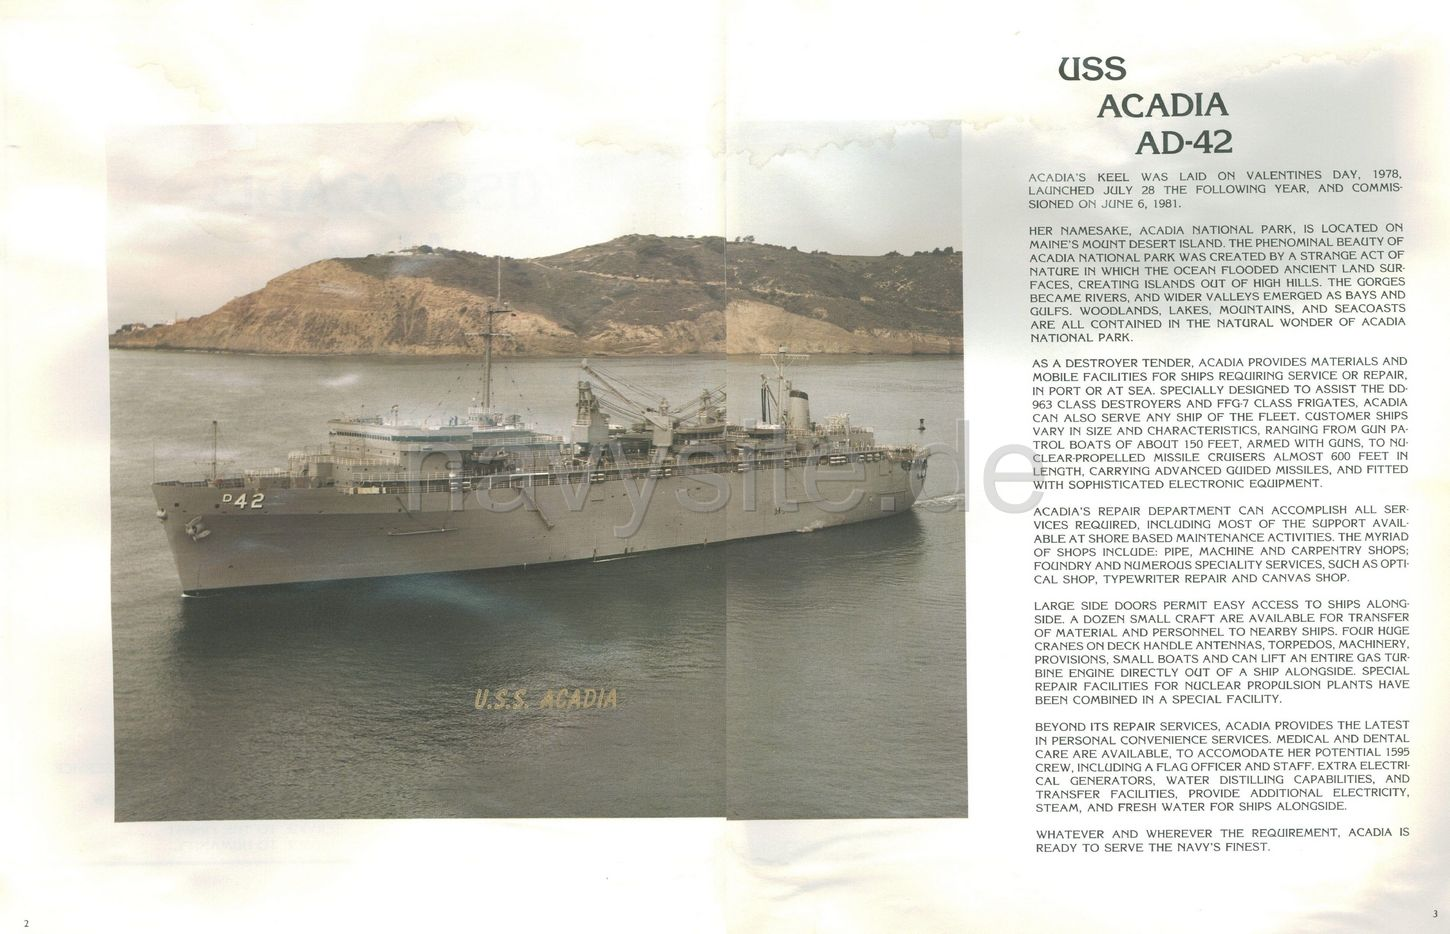 USS Acadia (AD 42) WestPac Cruise Book 1985 - Introduction